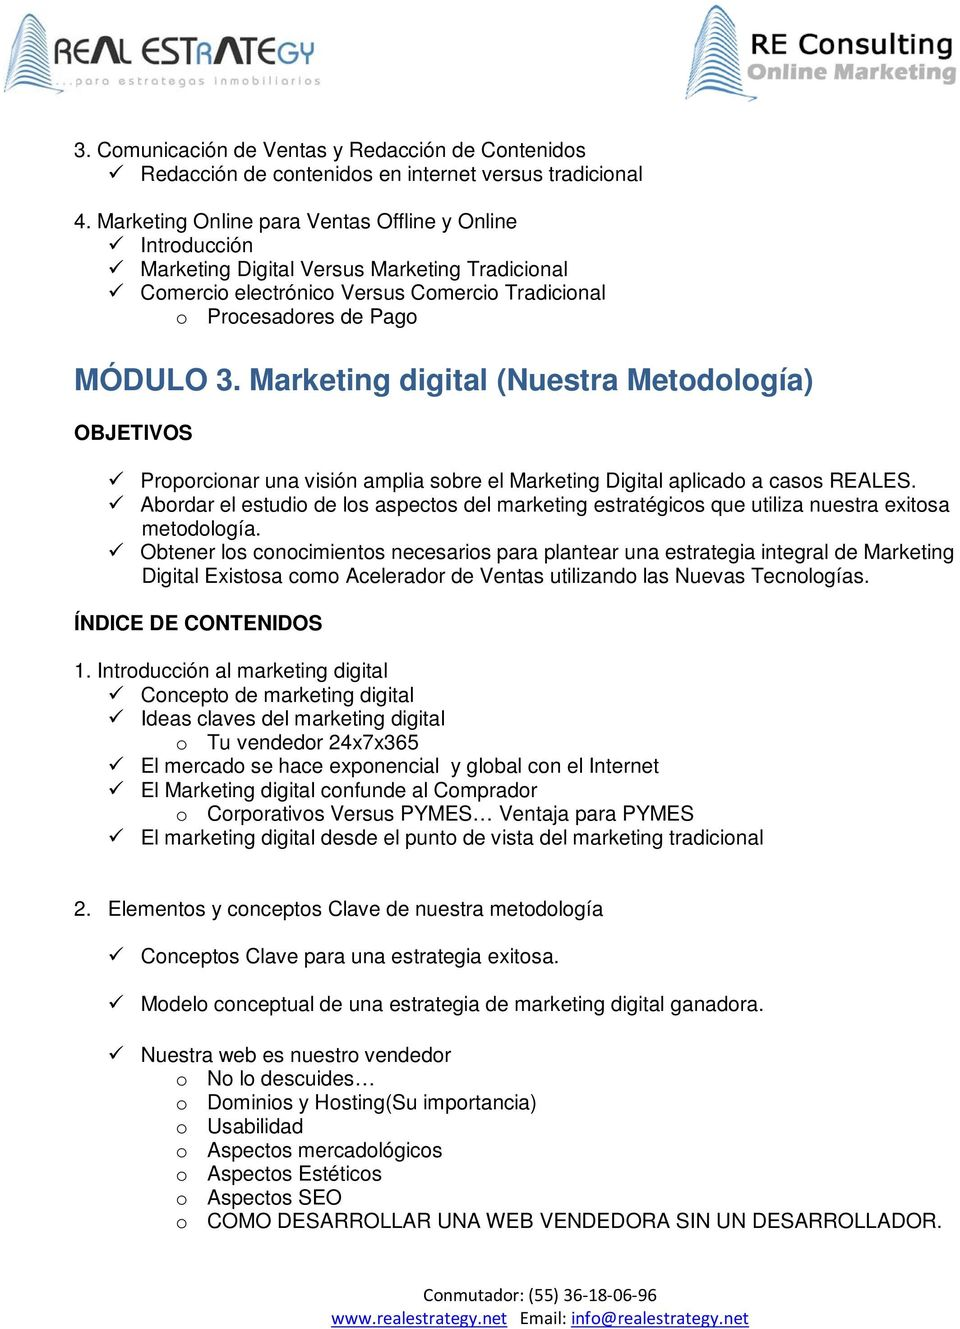 Marketing digital (Nuestra Metodología) Proporcionar una visión amplia sobre el Marketing Digital aplicado a casos REALES.